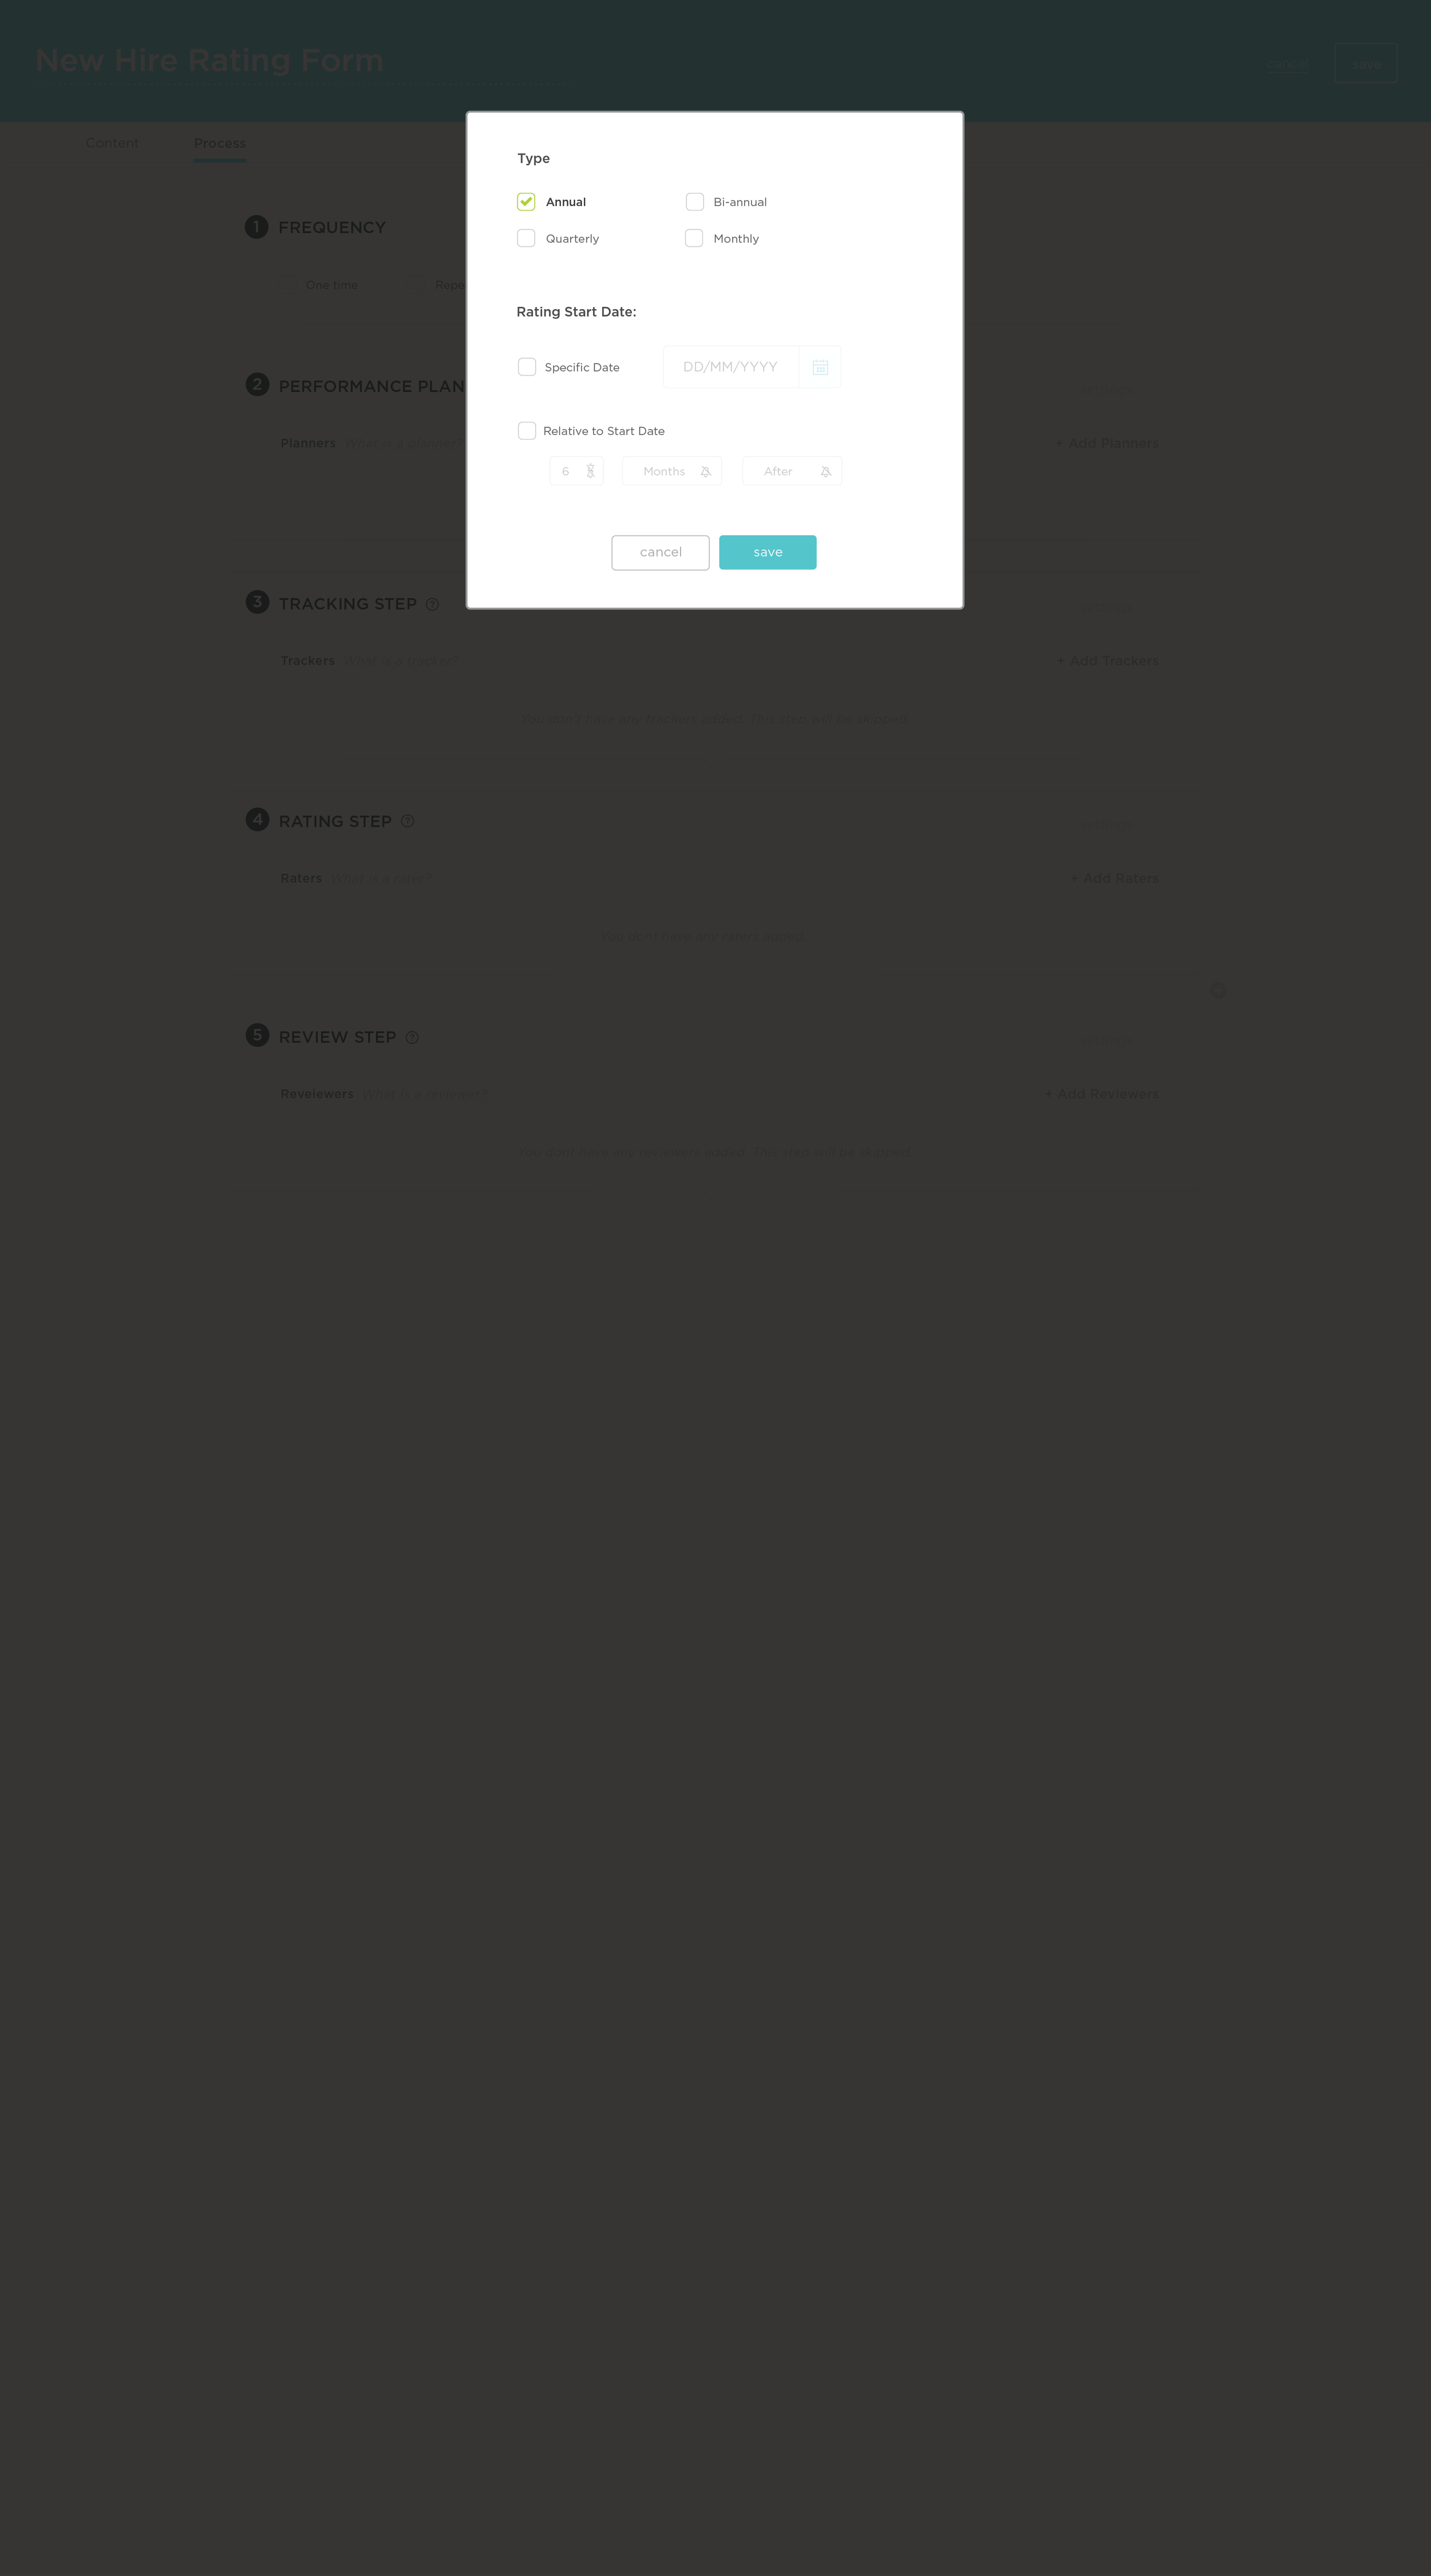 Invision_Pe_rating-form-process_03_3.png